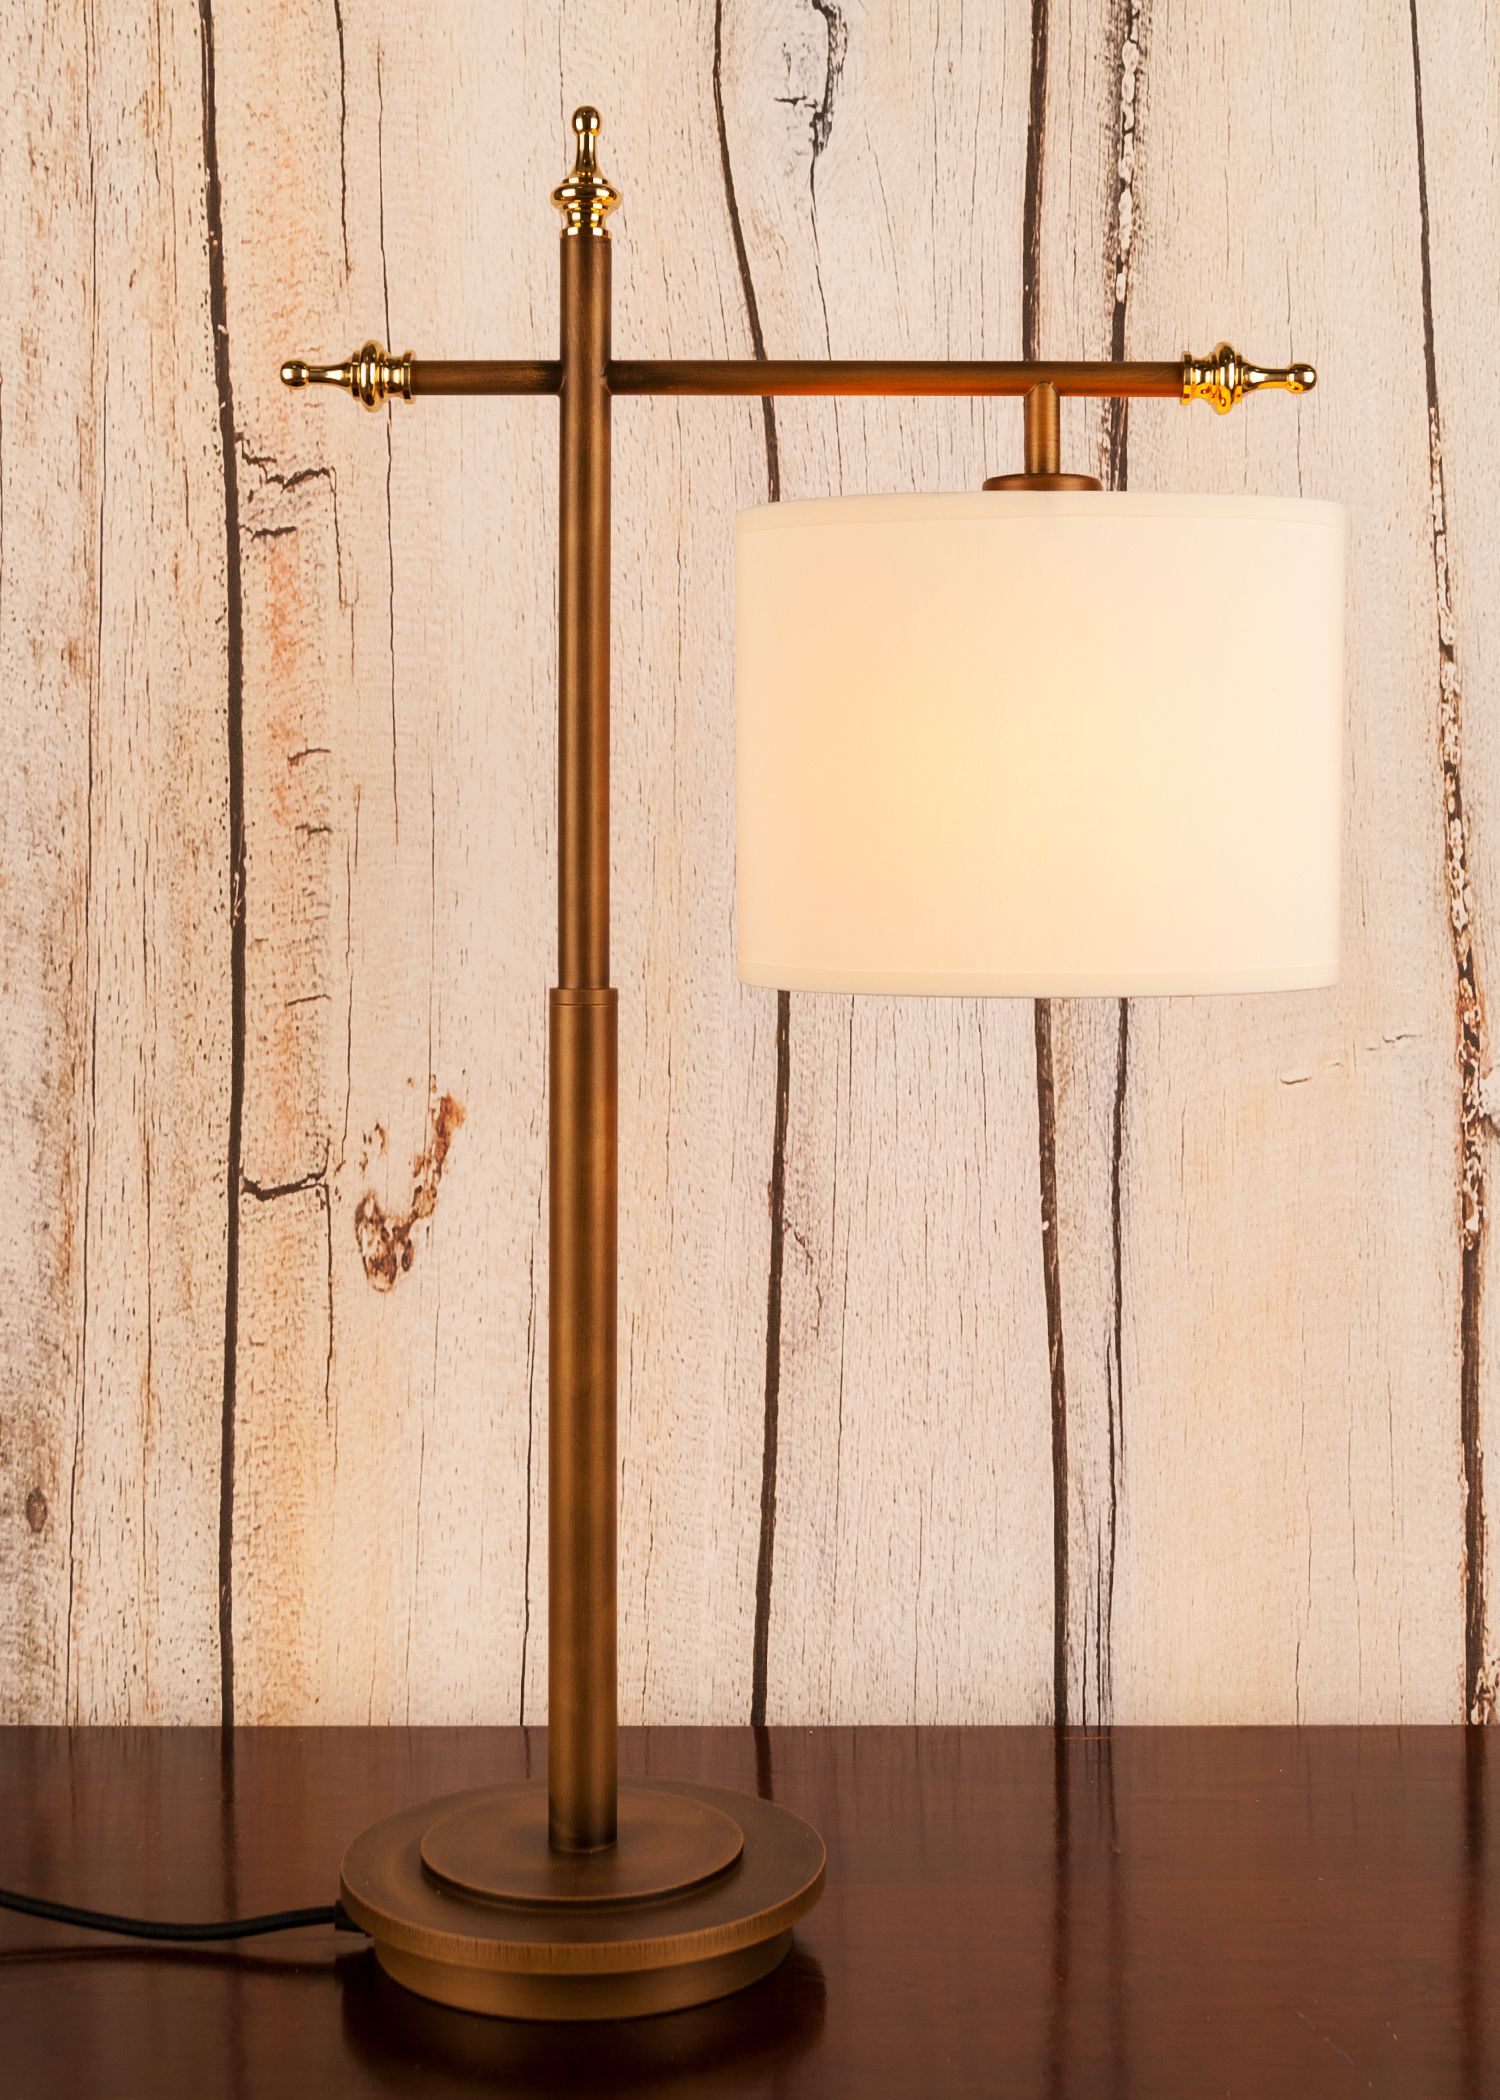 Medium Br Table Lamp Complete With Polished Detailing Part Of The Northern Lights Bar